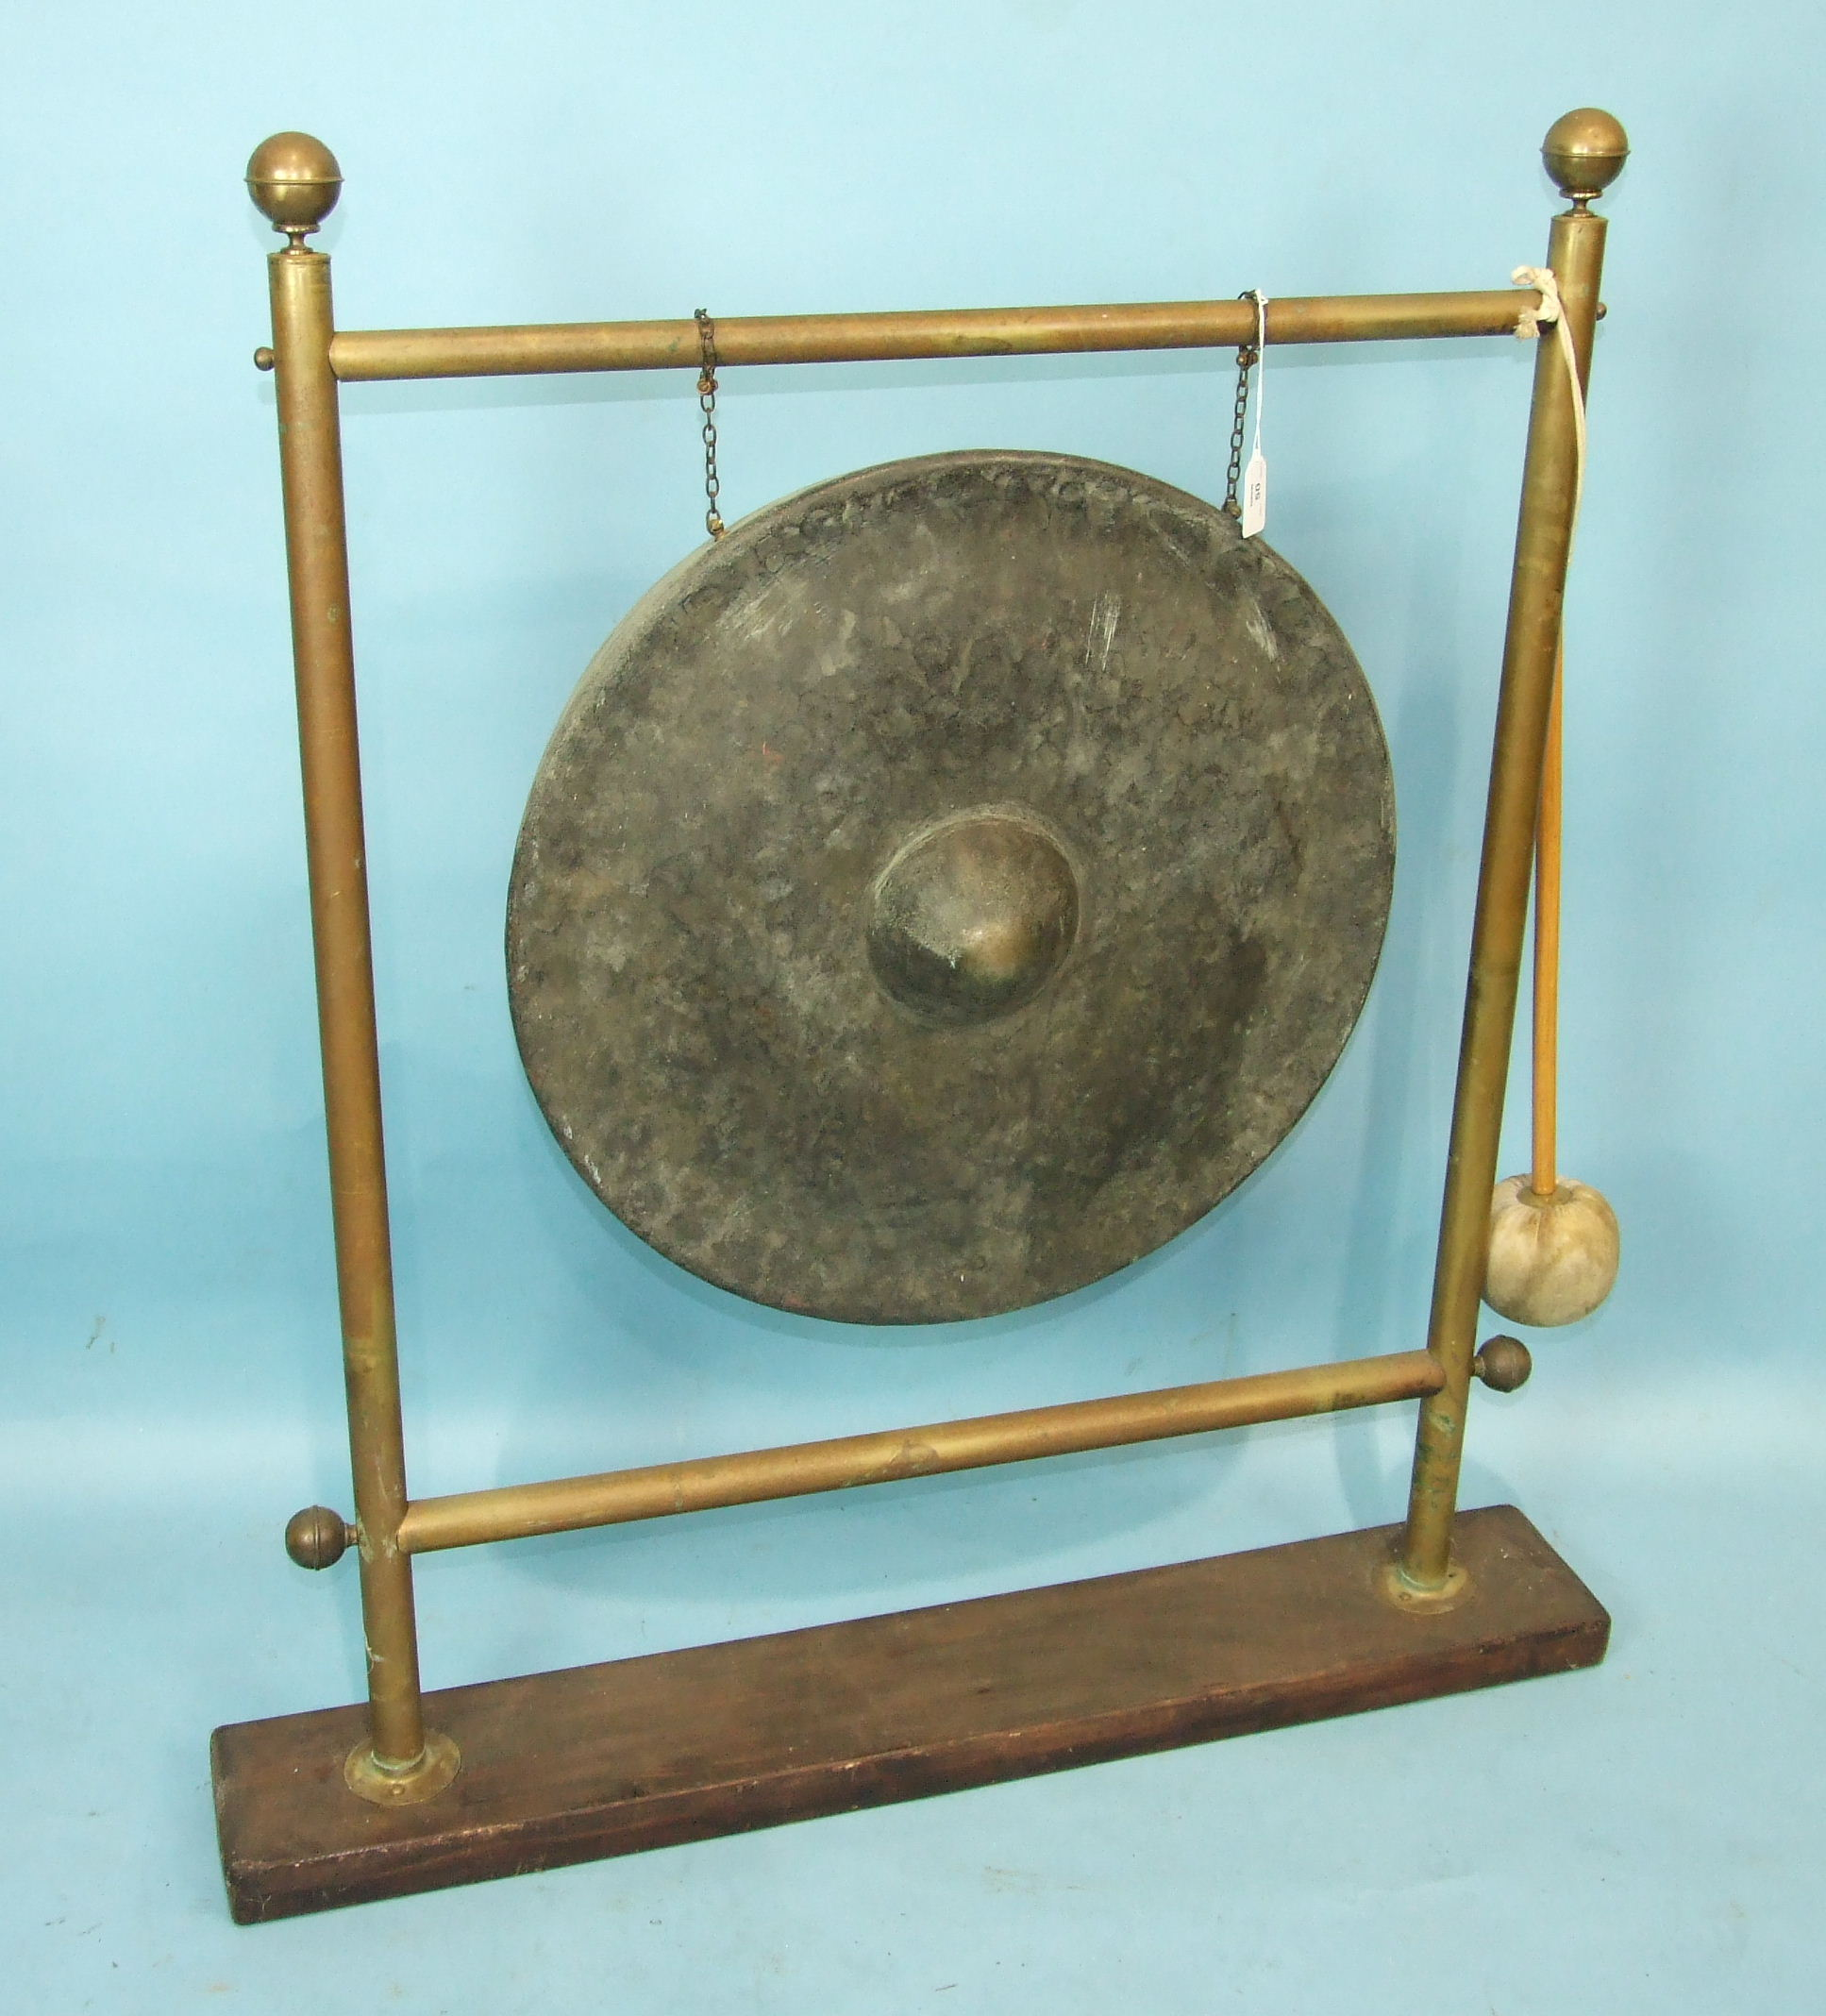 Lot 14 - A circular bronze gong with central raised boss on later brass stand with beater, gong 55cm